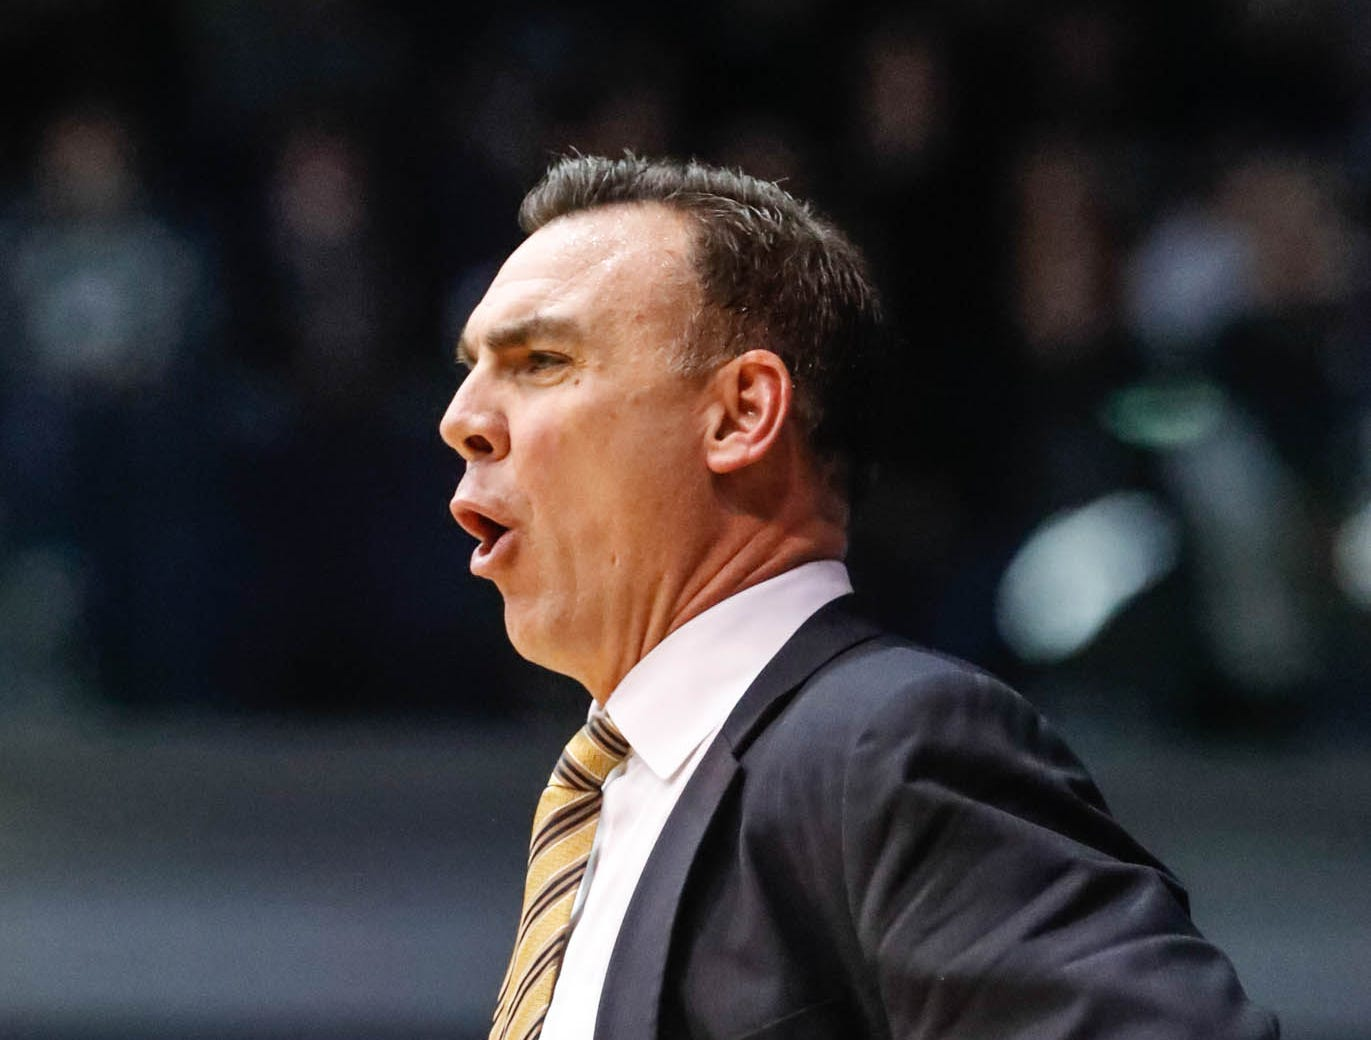 UC Irvine's Head Coach, Russell Turner, reacts to a technical foul during a game between Butler University and UC Irvine, at Hinkle Fieldhouse on Friday, Dec. 21, 2018.